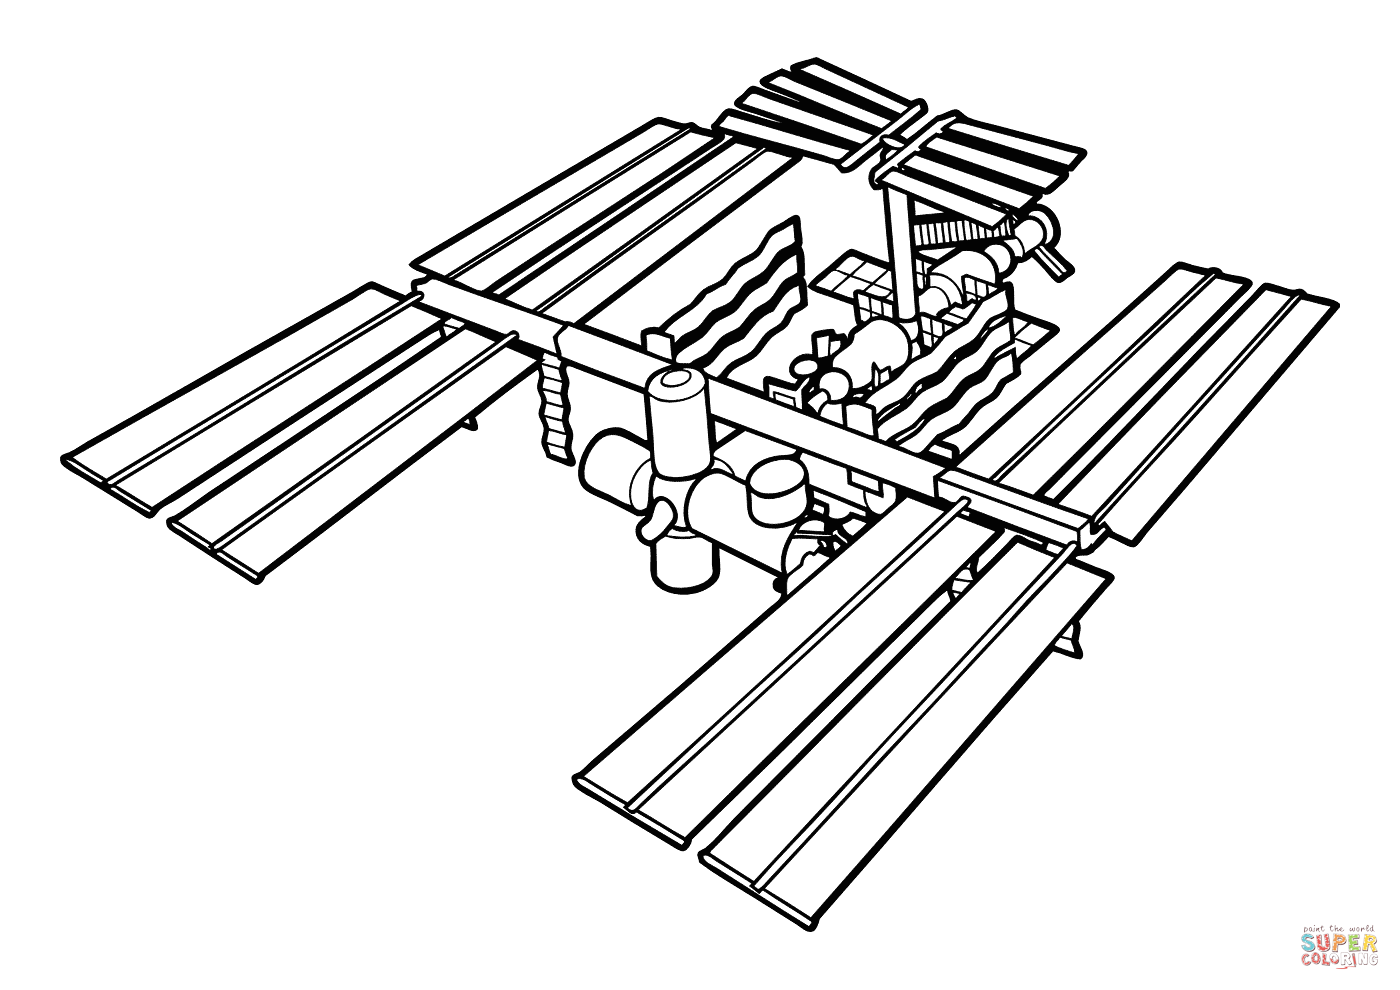 Iss International Space Station Coloring Page